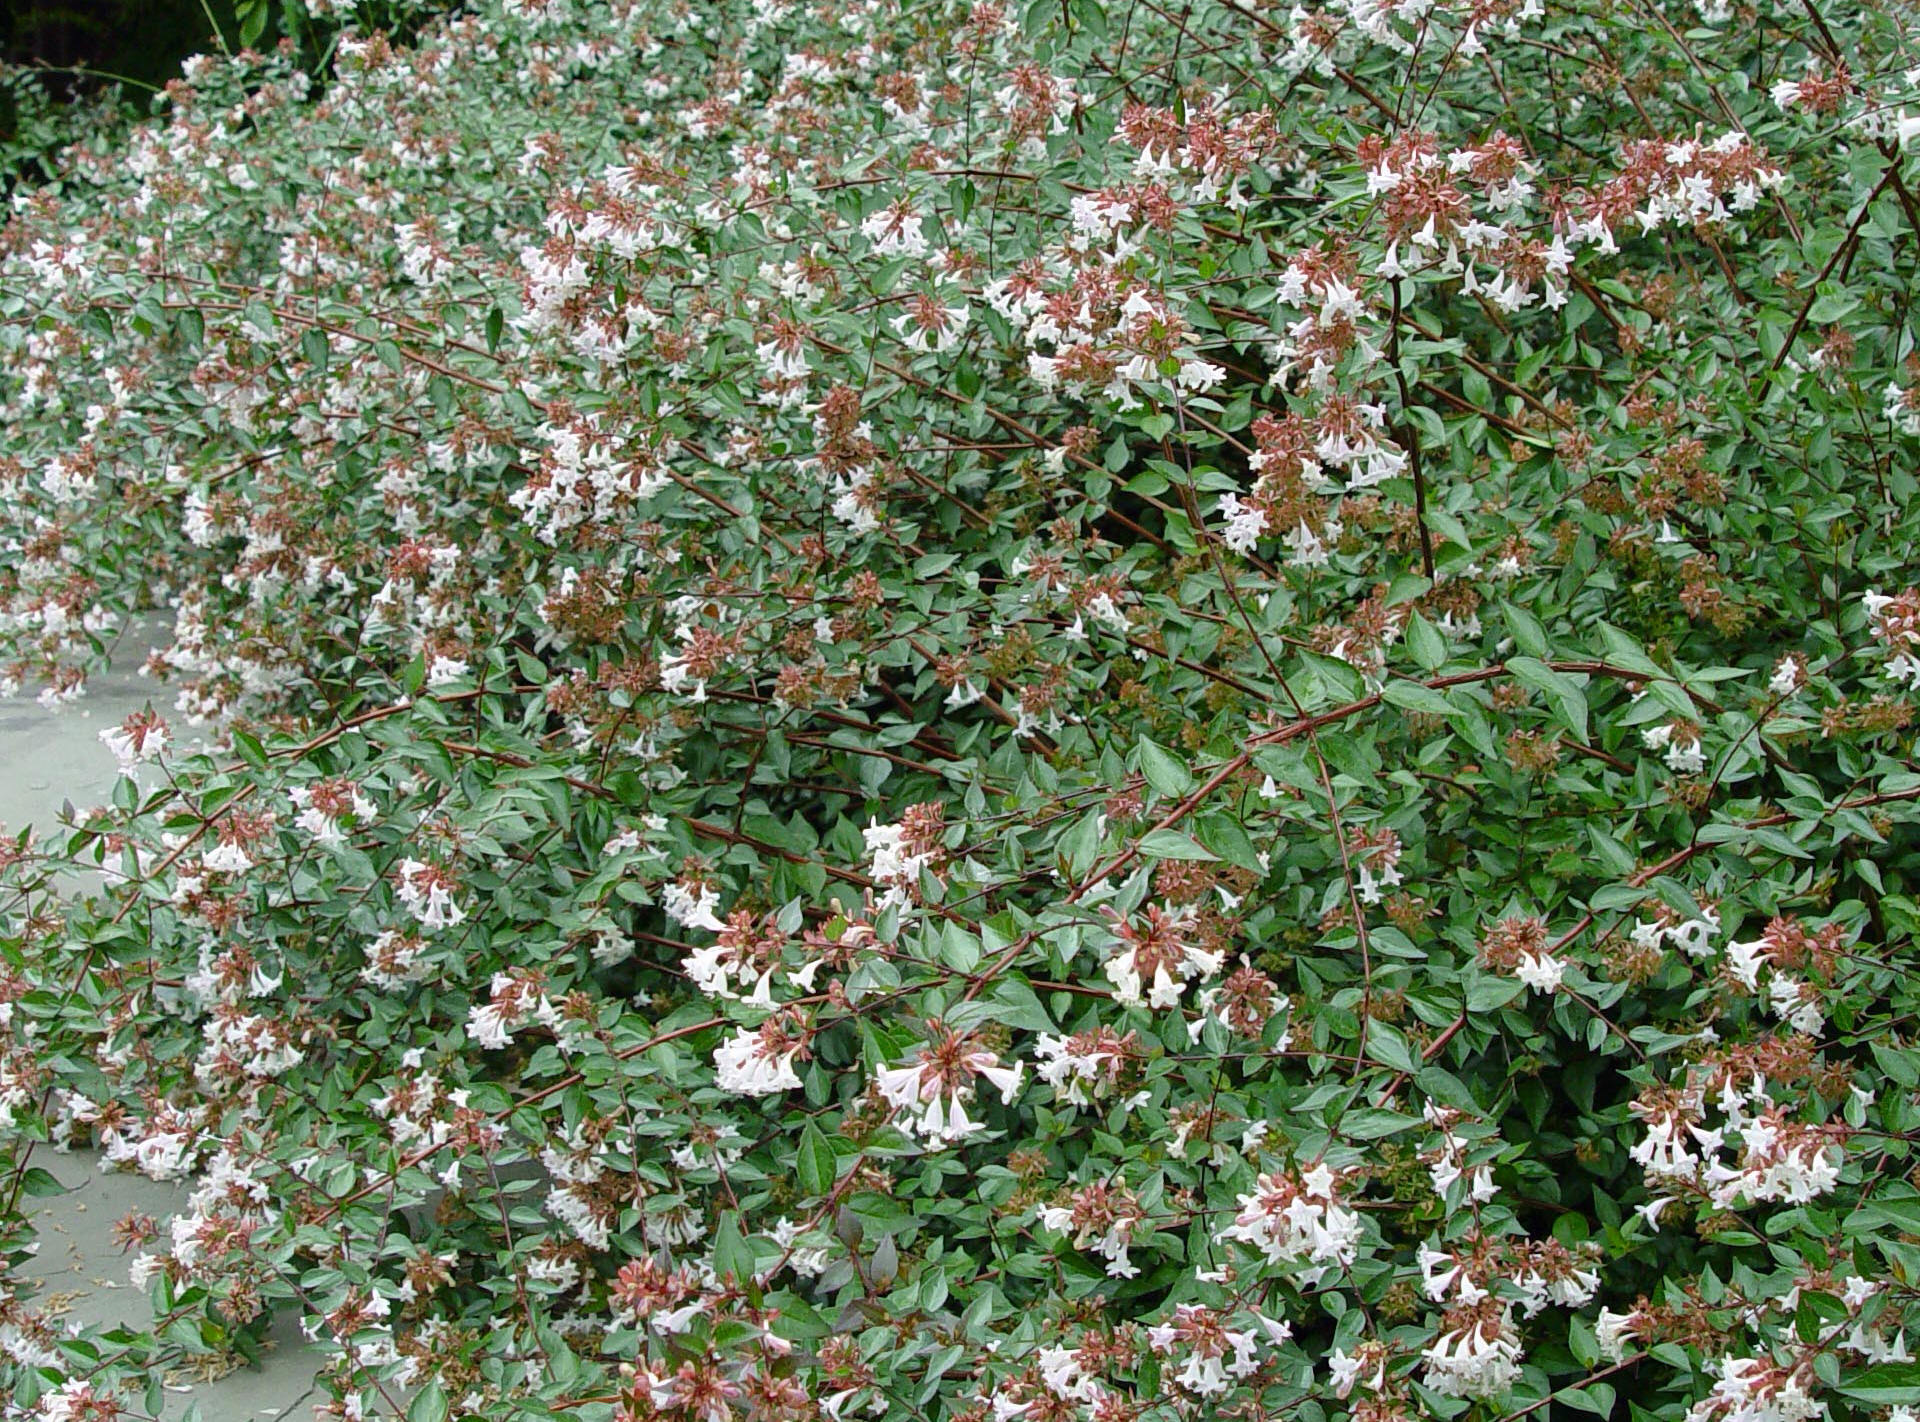 Beautiful An Evergreen Gardening Rose Creek Abelia Texas Rose Creek Abelia Ideas Abelias A Good Choice Abelias A Good Choice An Evergreen Gardening George Weigel Is A Line Is A Line houzz-03 Rose Creek Abelia